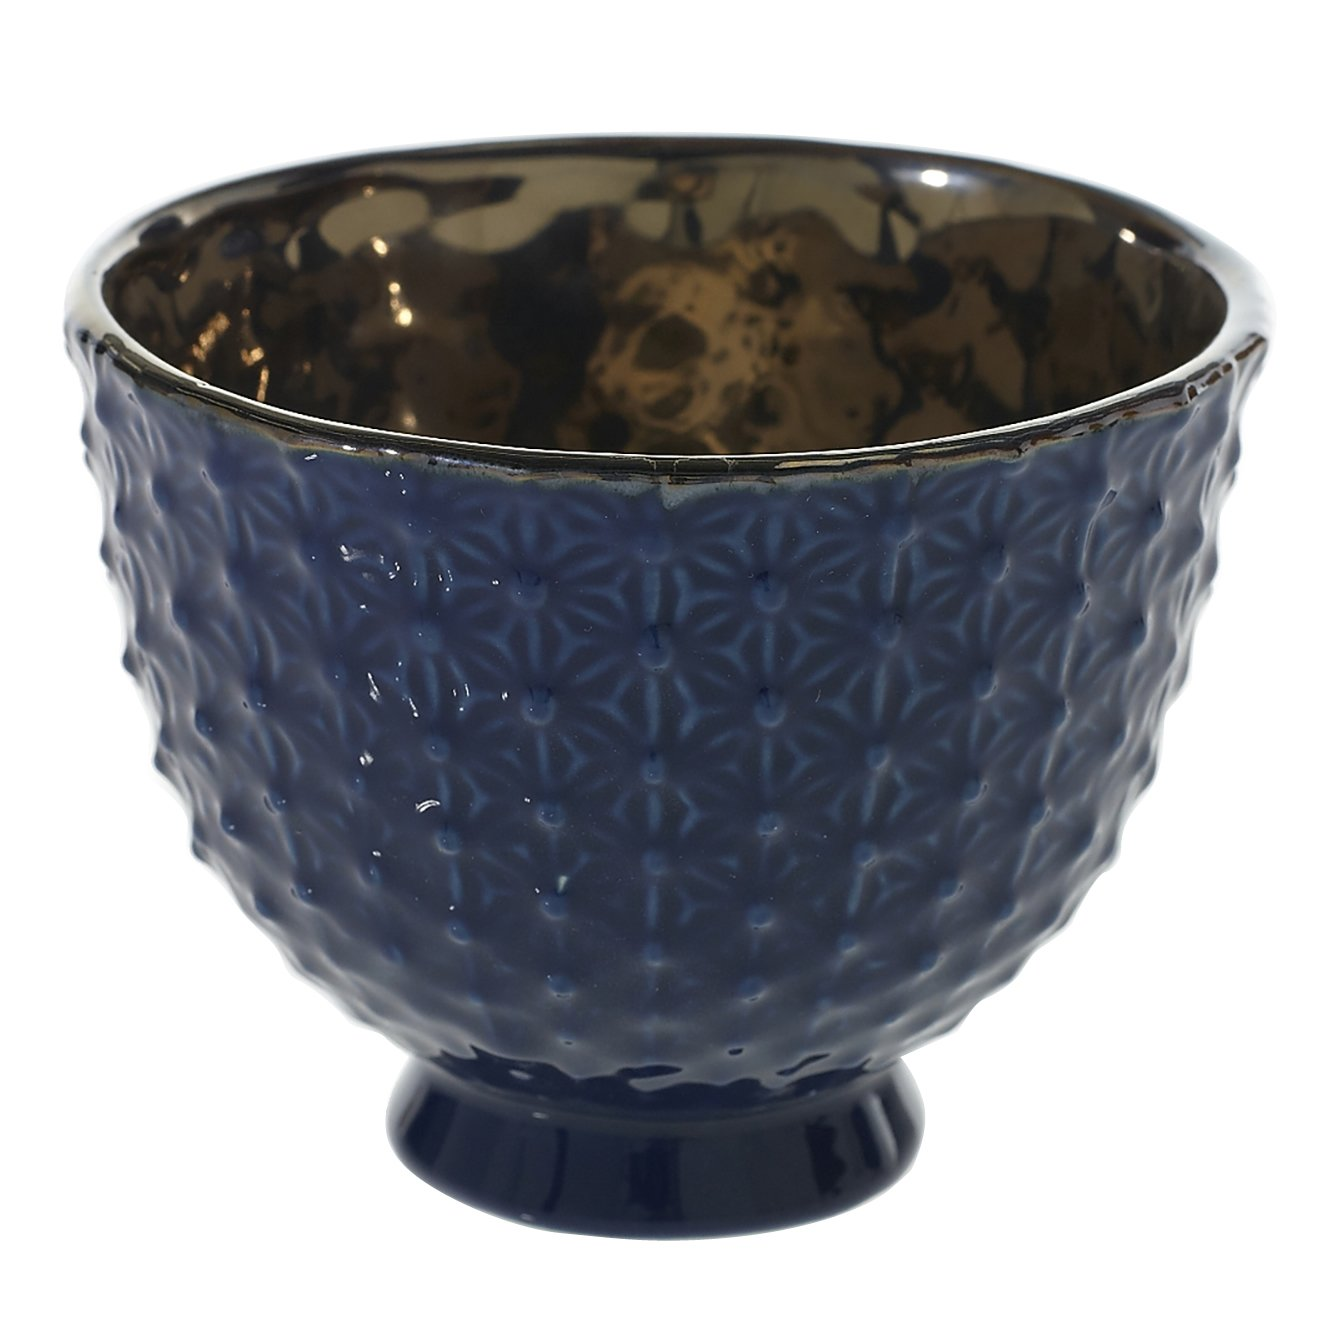 Blue Ceramic Compote Vase - 4.25 x 3.25 Inches - Pierre Compote Textured Navy Blue Pot w/ Shiny Brass Interior - Modern Planter Decor for Home or Office